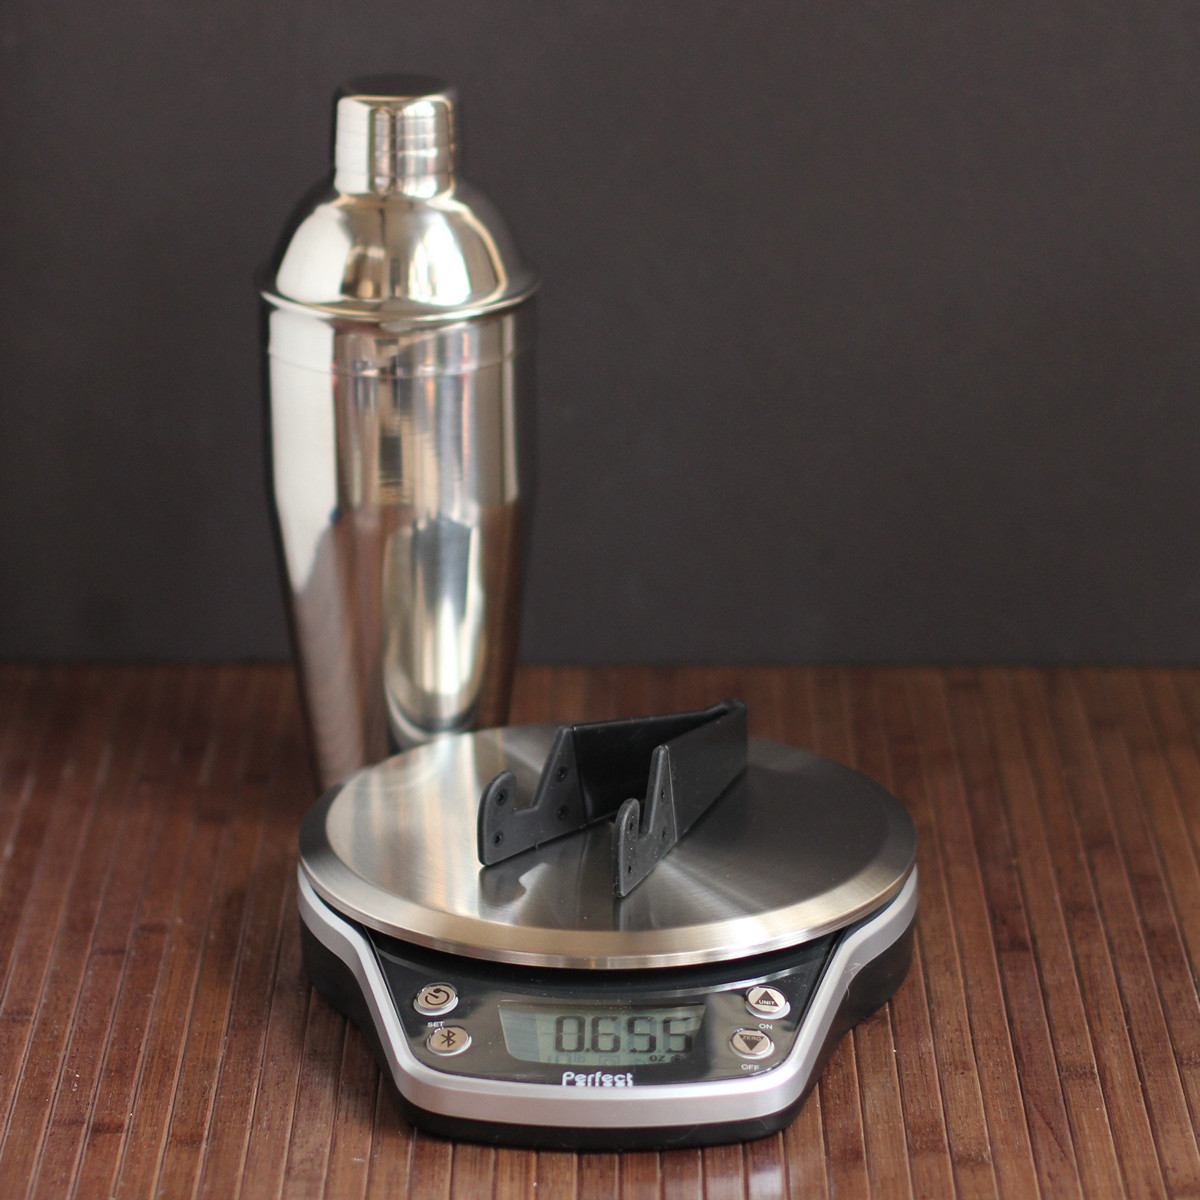 Cookistry 39 s kitchen gadget and food reviews perfect drink for Perfect scale pro review